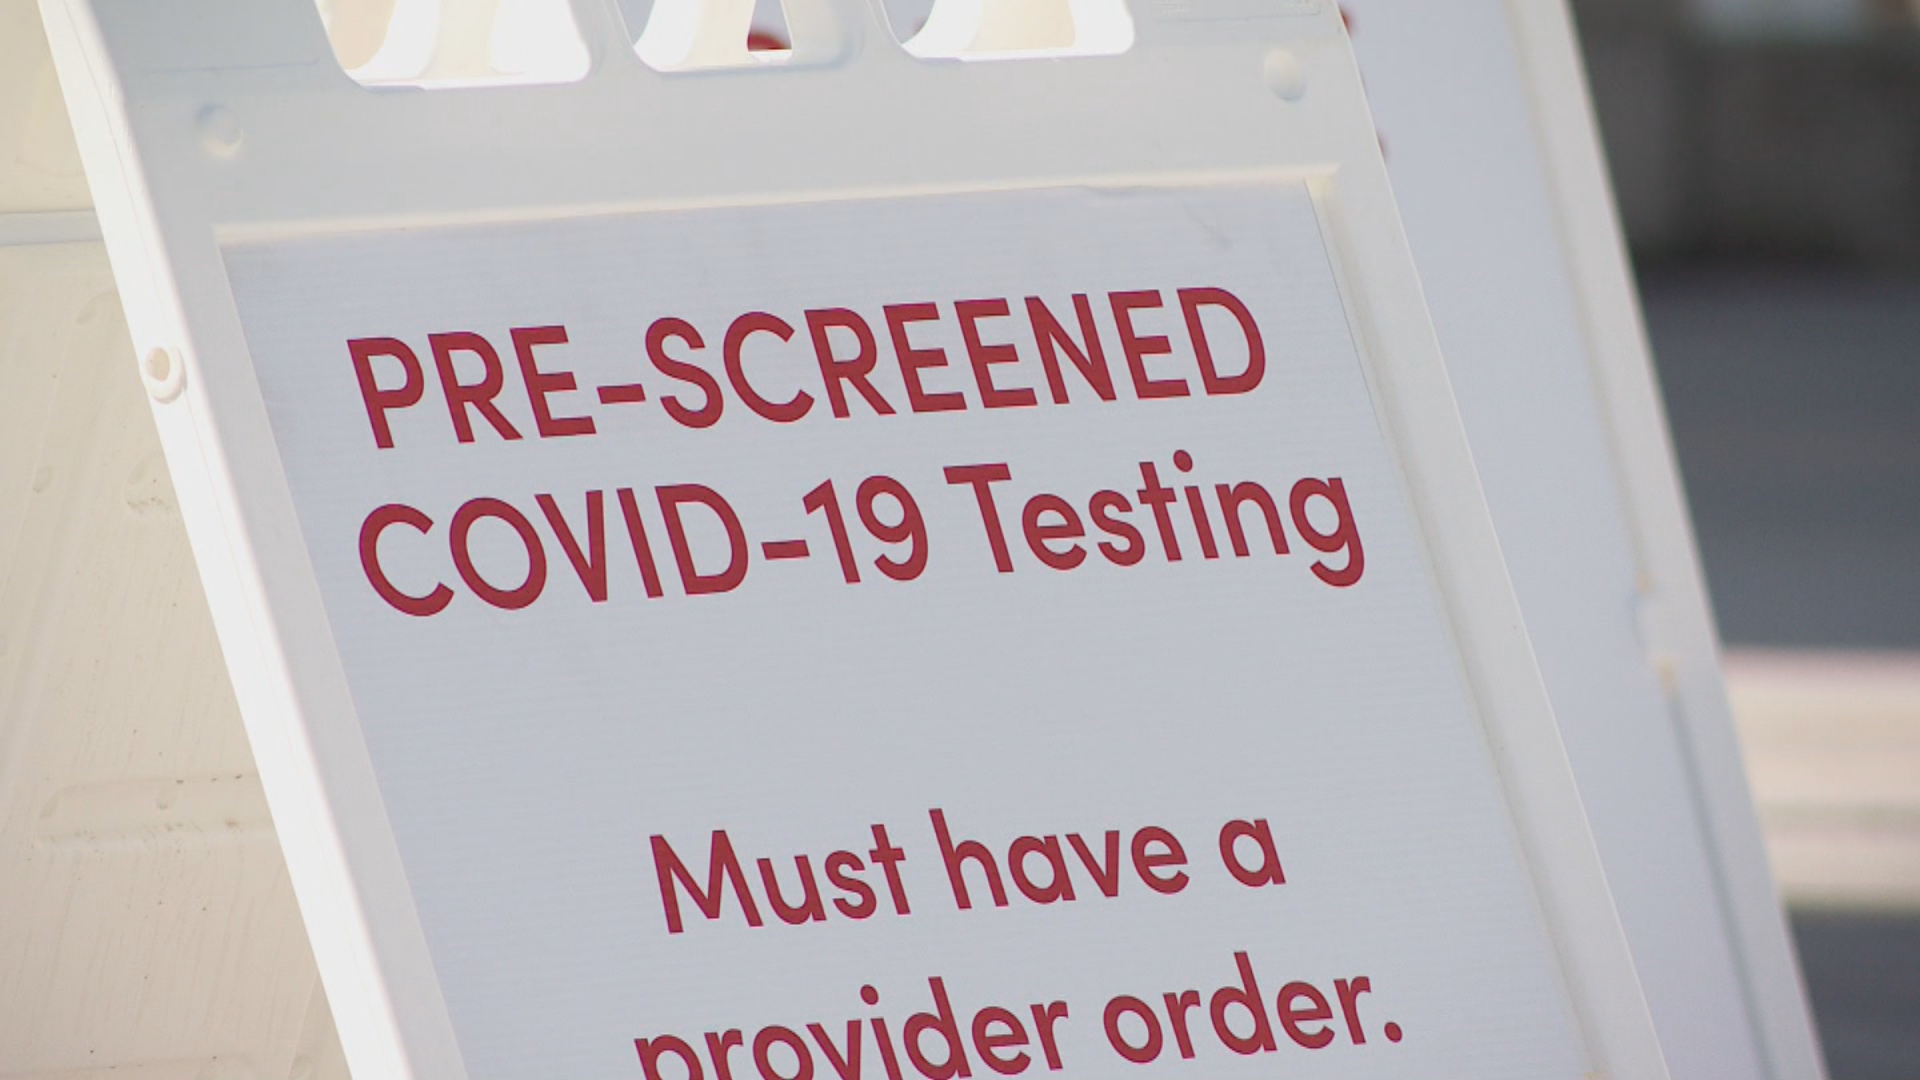 As health officials mull what a recent plateau at COVID-19 testing sites could mean, the number of documented cases of the virus in the state increased to 1,428 on Saturday. (Photo: KUTV FILE)